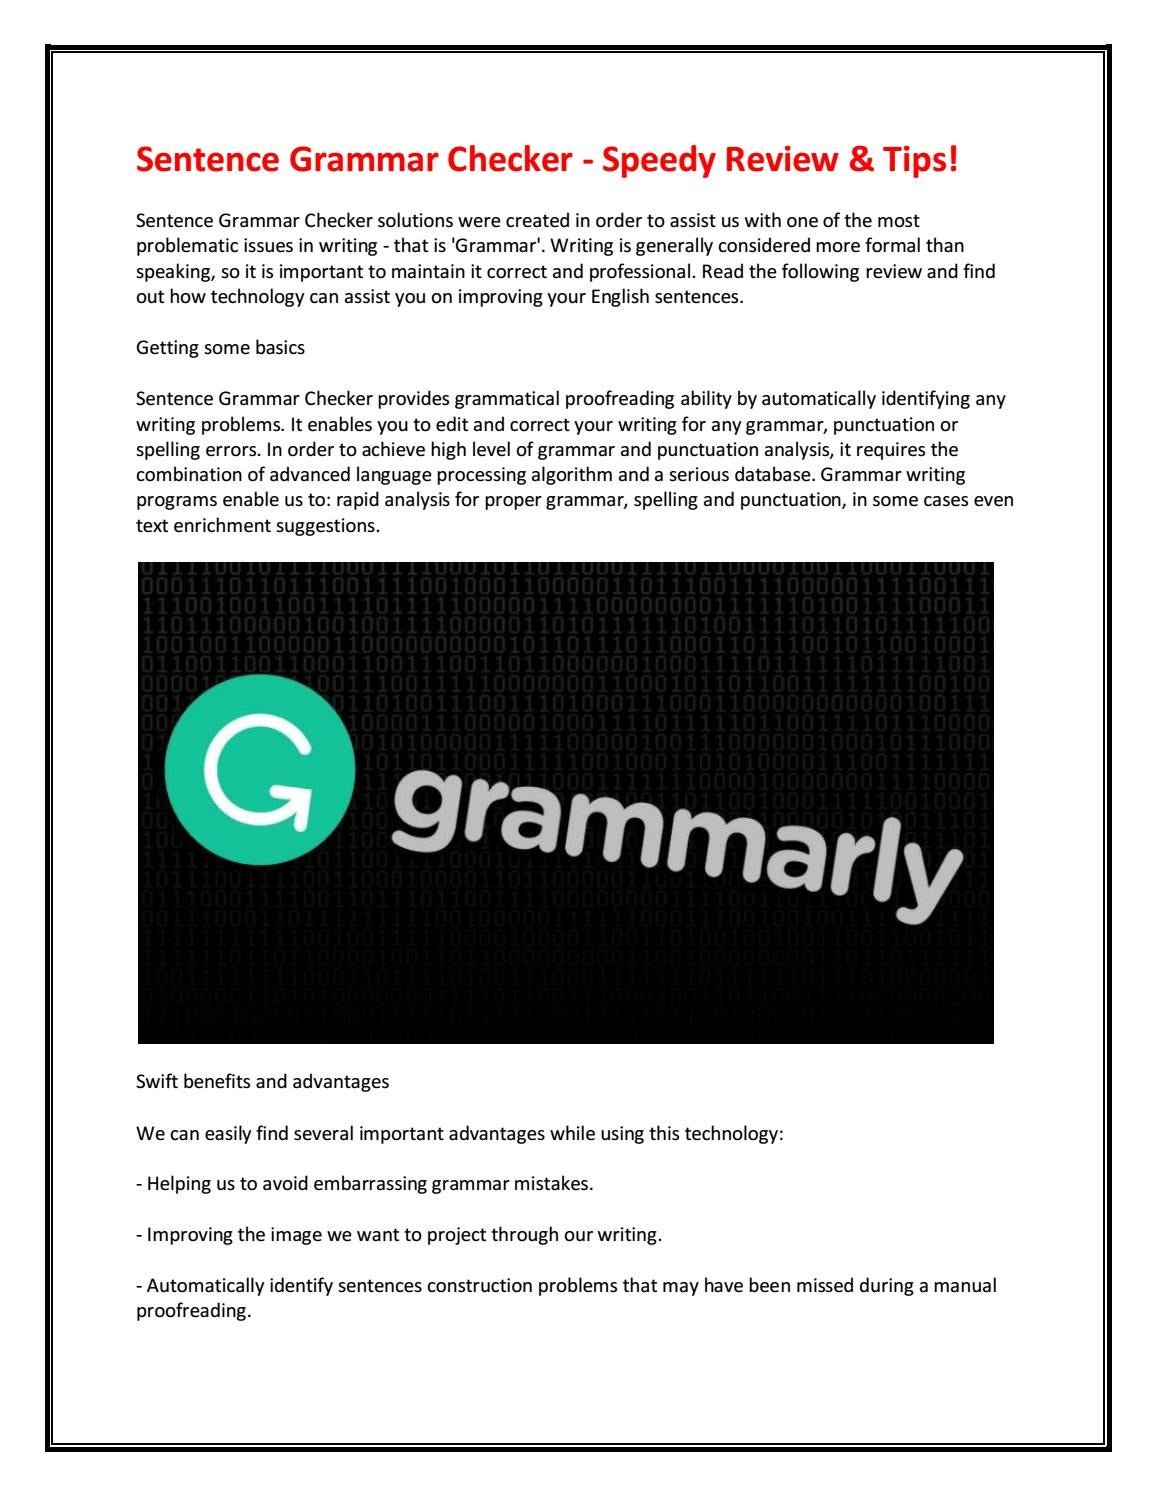 Grammarly coupon by mark89ware - issuu